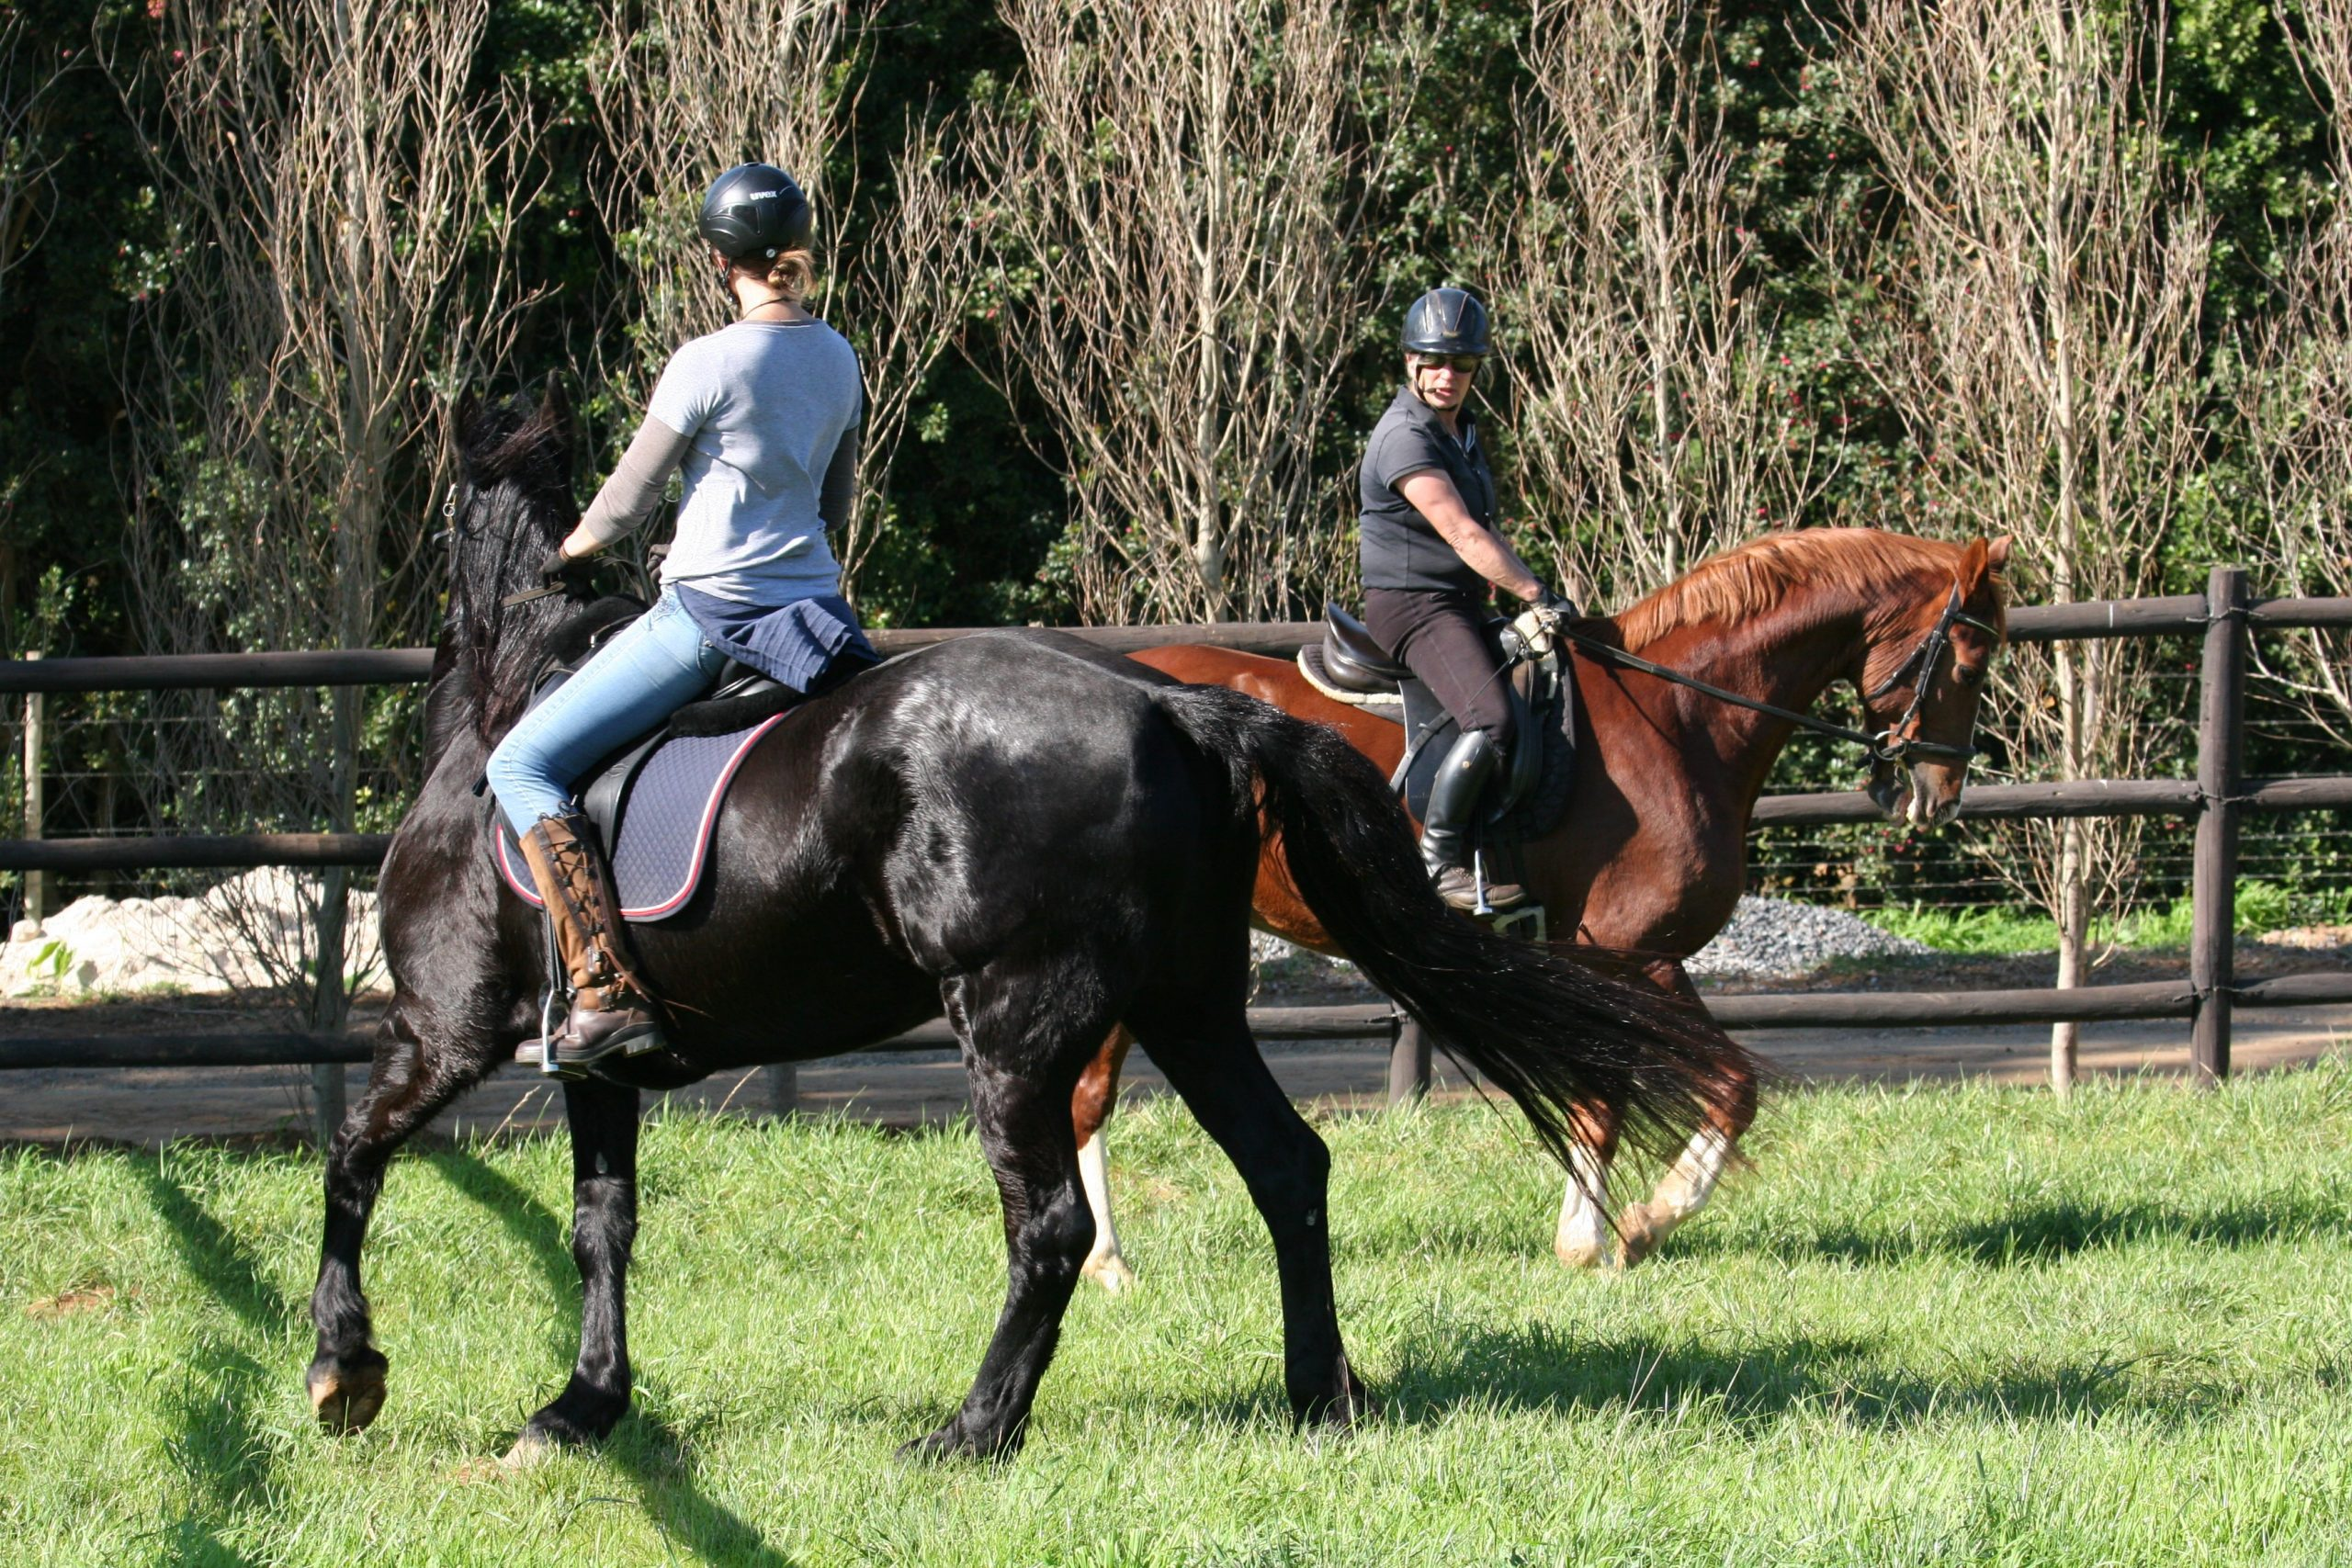 equestrian wireless training system for communication between trainer and horse rider